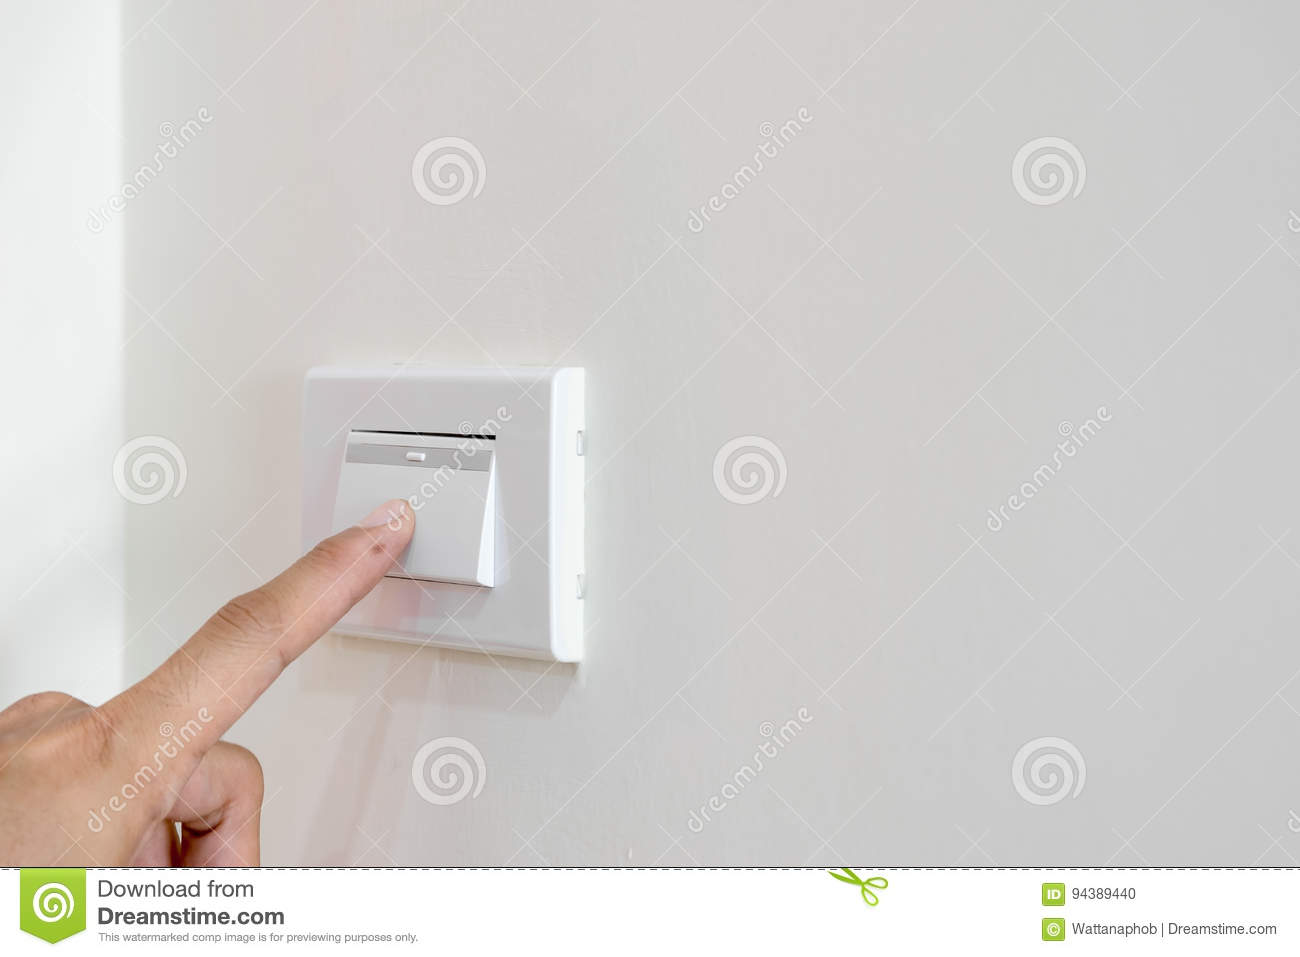 Open The Light Switch On The Wall. Stock Photo - Image of ...